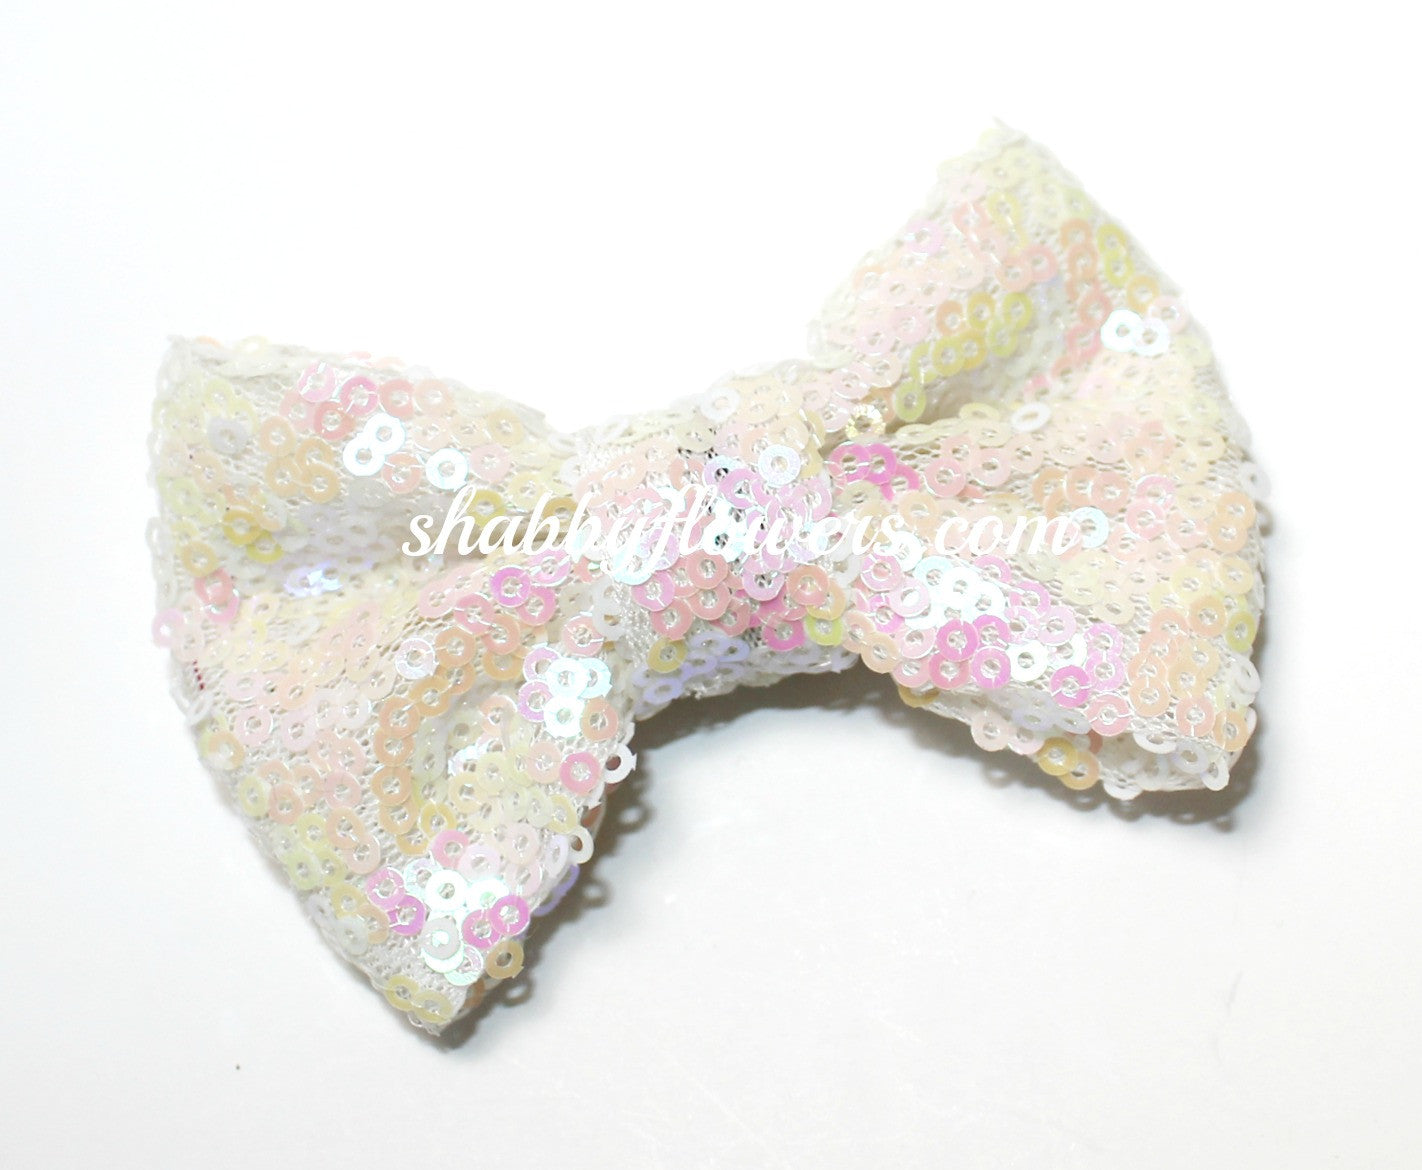 Medium Sequin Bow - White - shabbyflowers.com